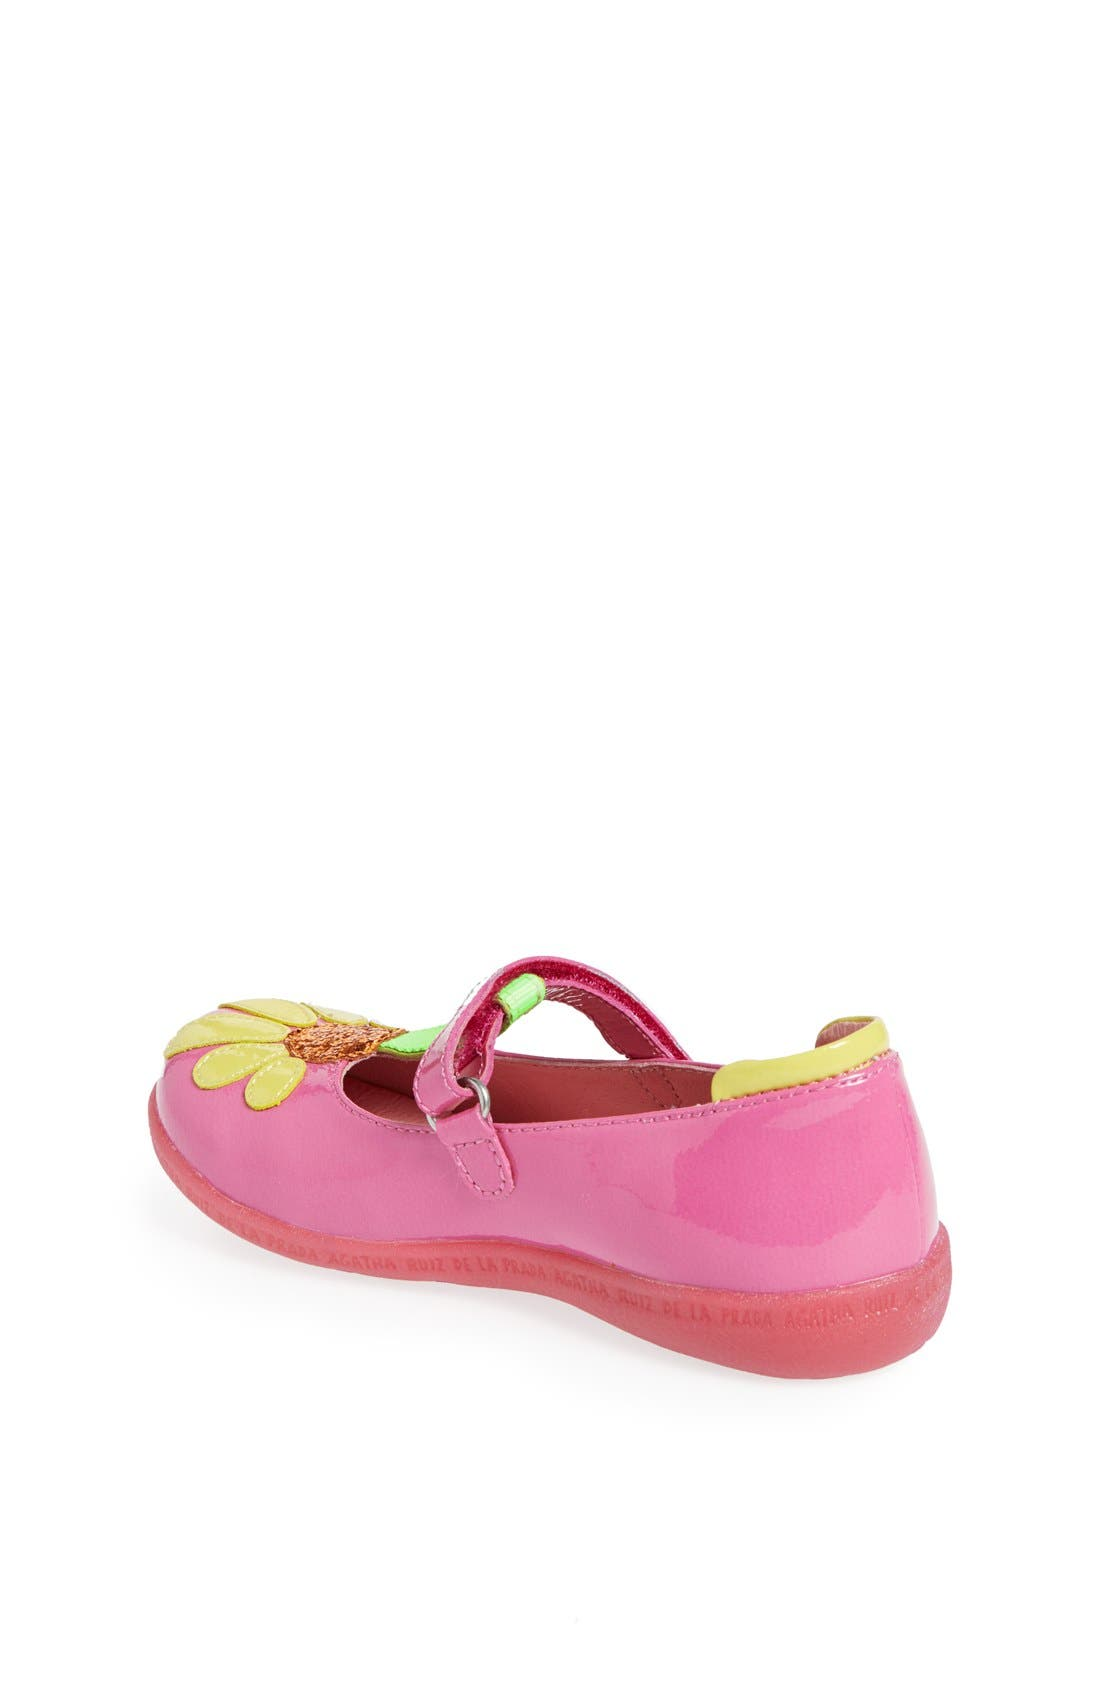 Alternate Image 2  - Agatha Ruiz de la Prada 'Glitter Flower' Mary Jane (Toddler & Little Kid)